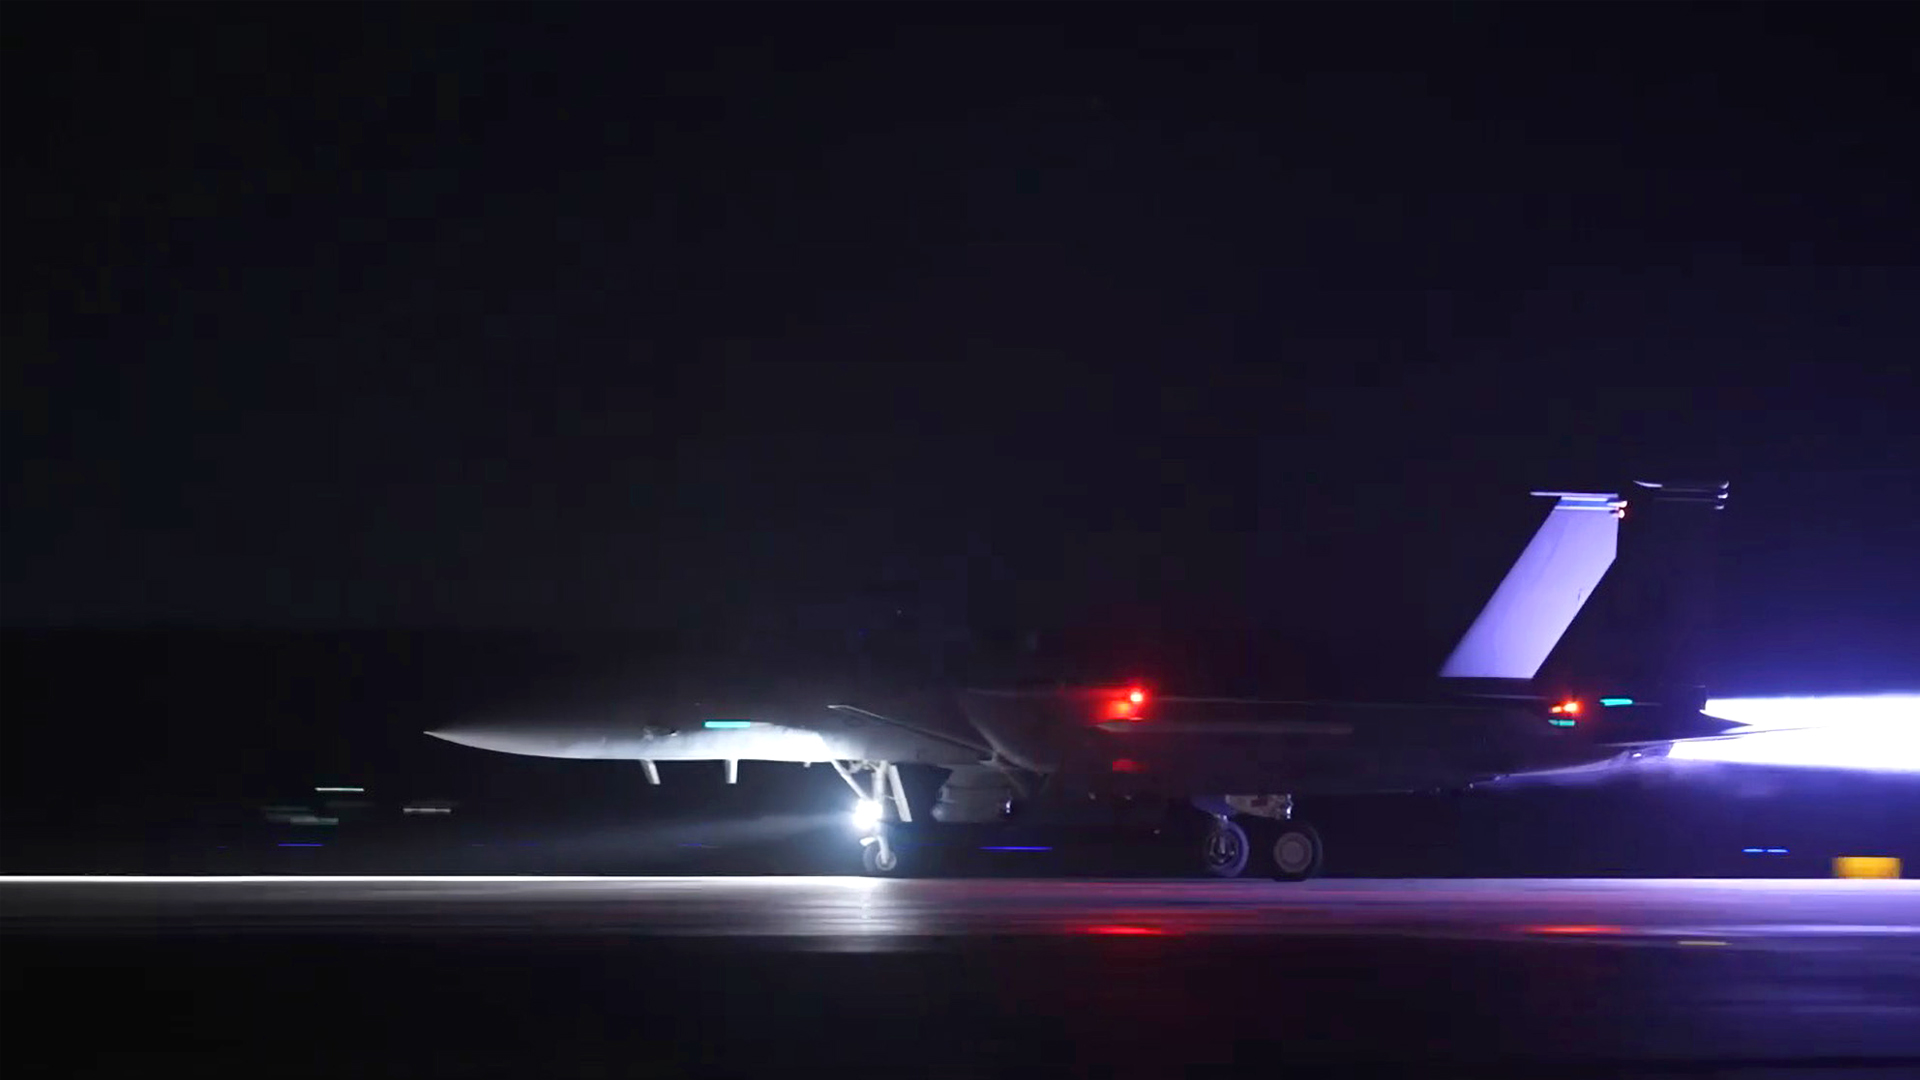 VIDEO: US F-15 Fighter Jet Lights Up Suffolk Runway For Night Operation